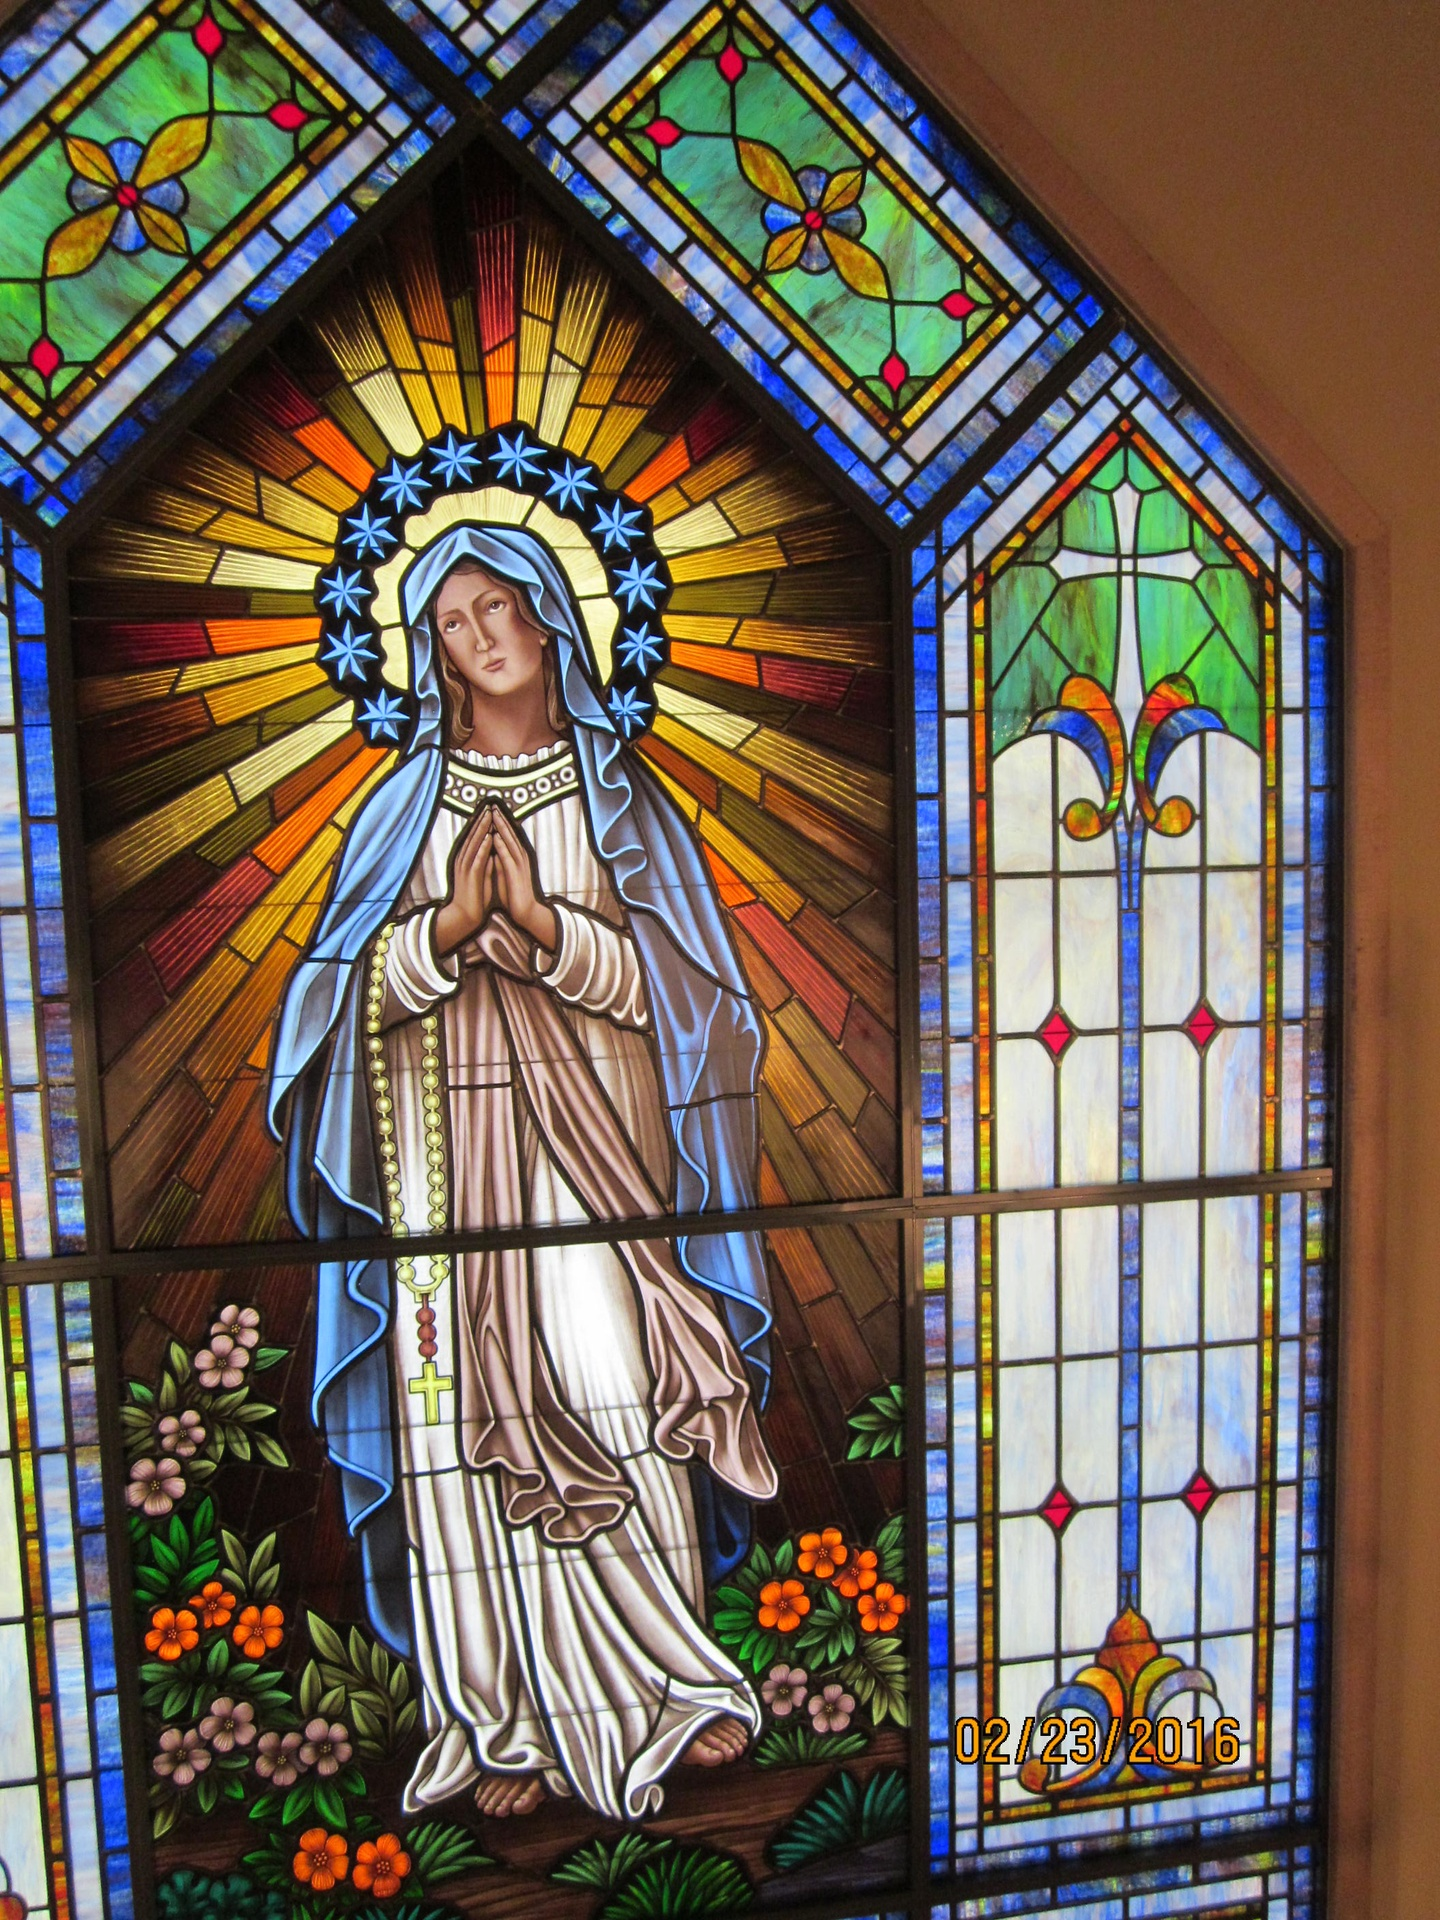 Stained Glass Window At Our Lady Of The Mountain Catholic Church In Long Valley NJ